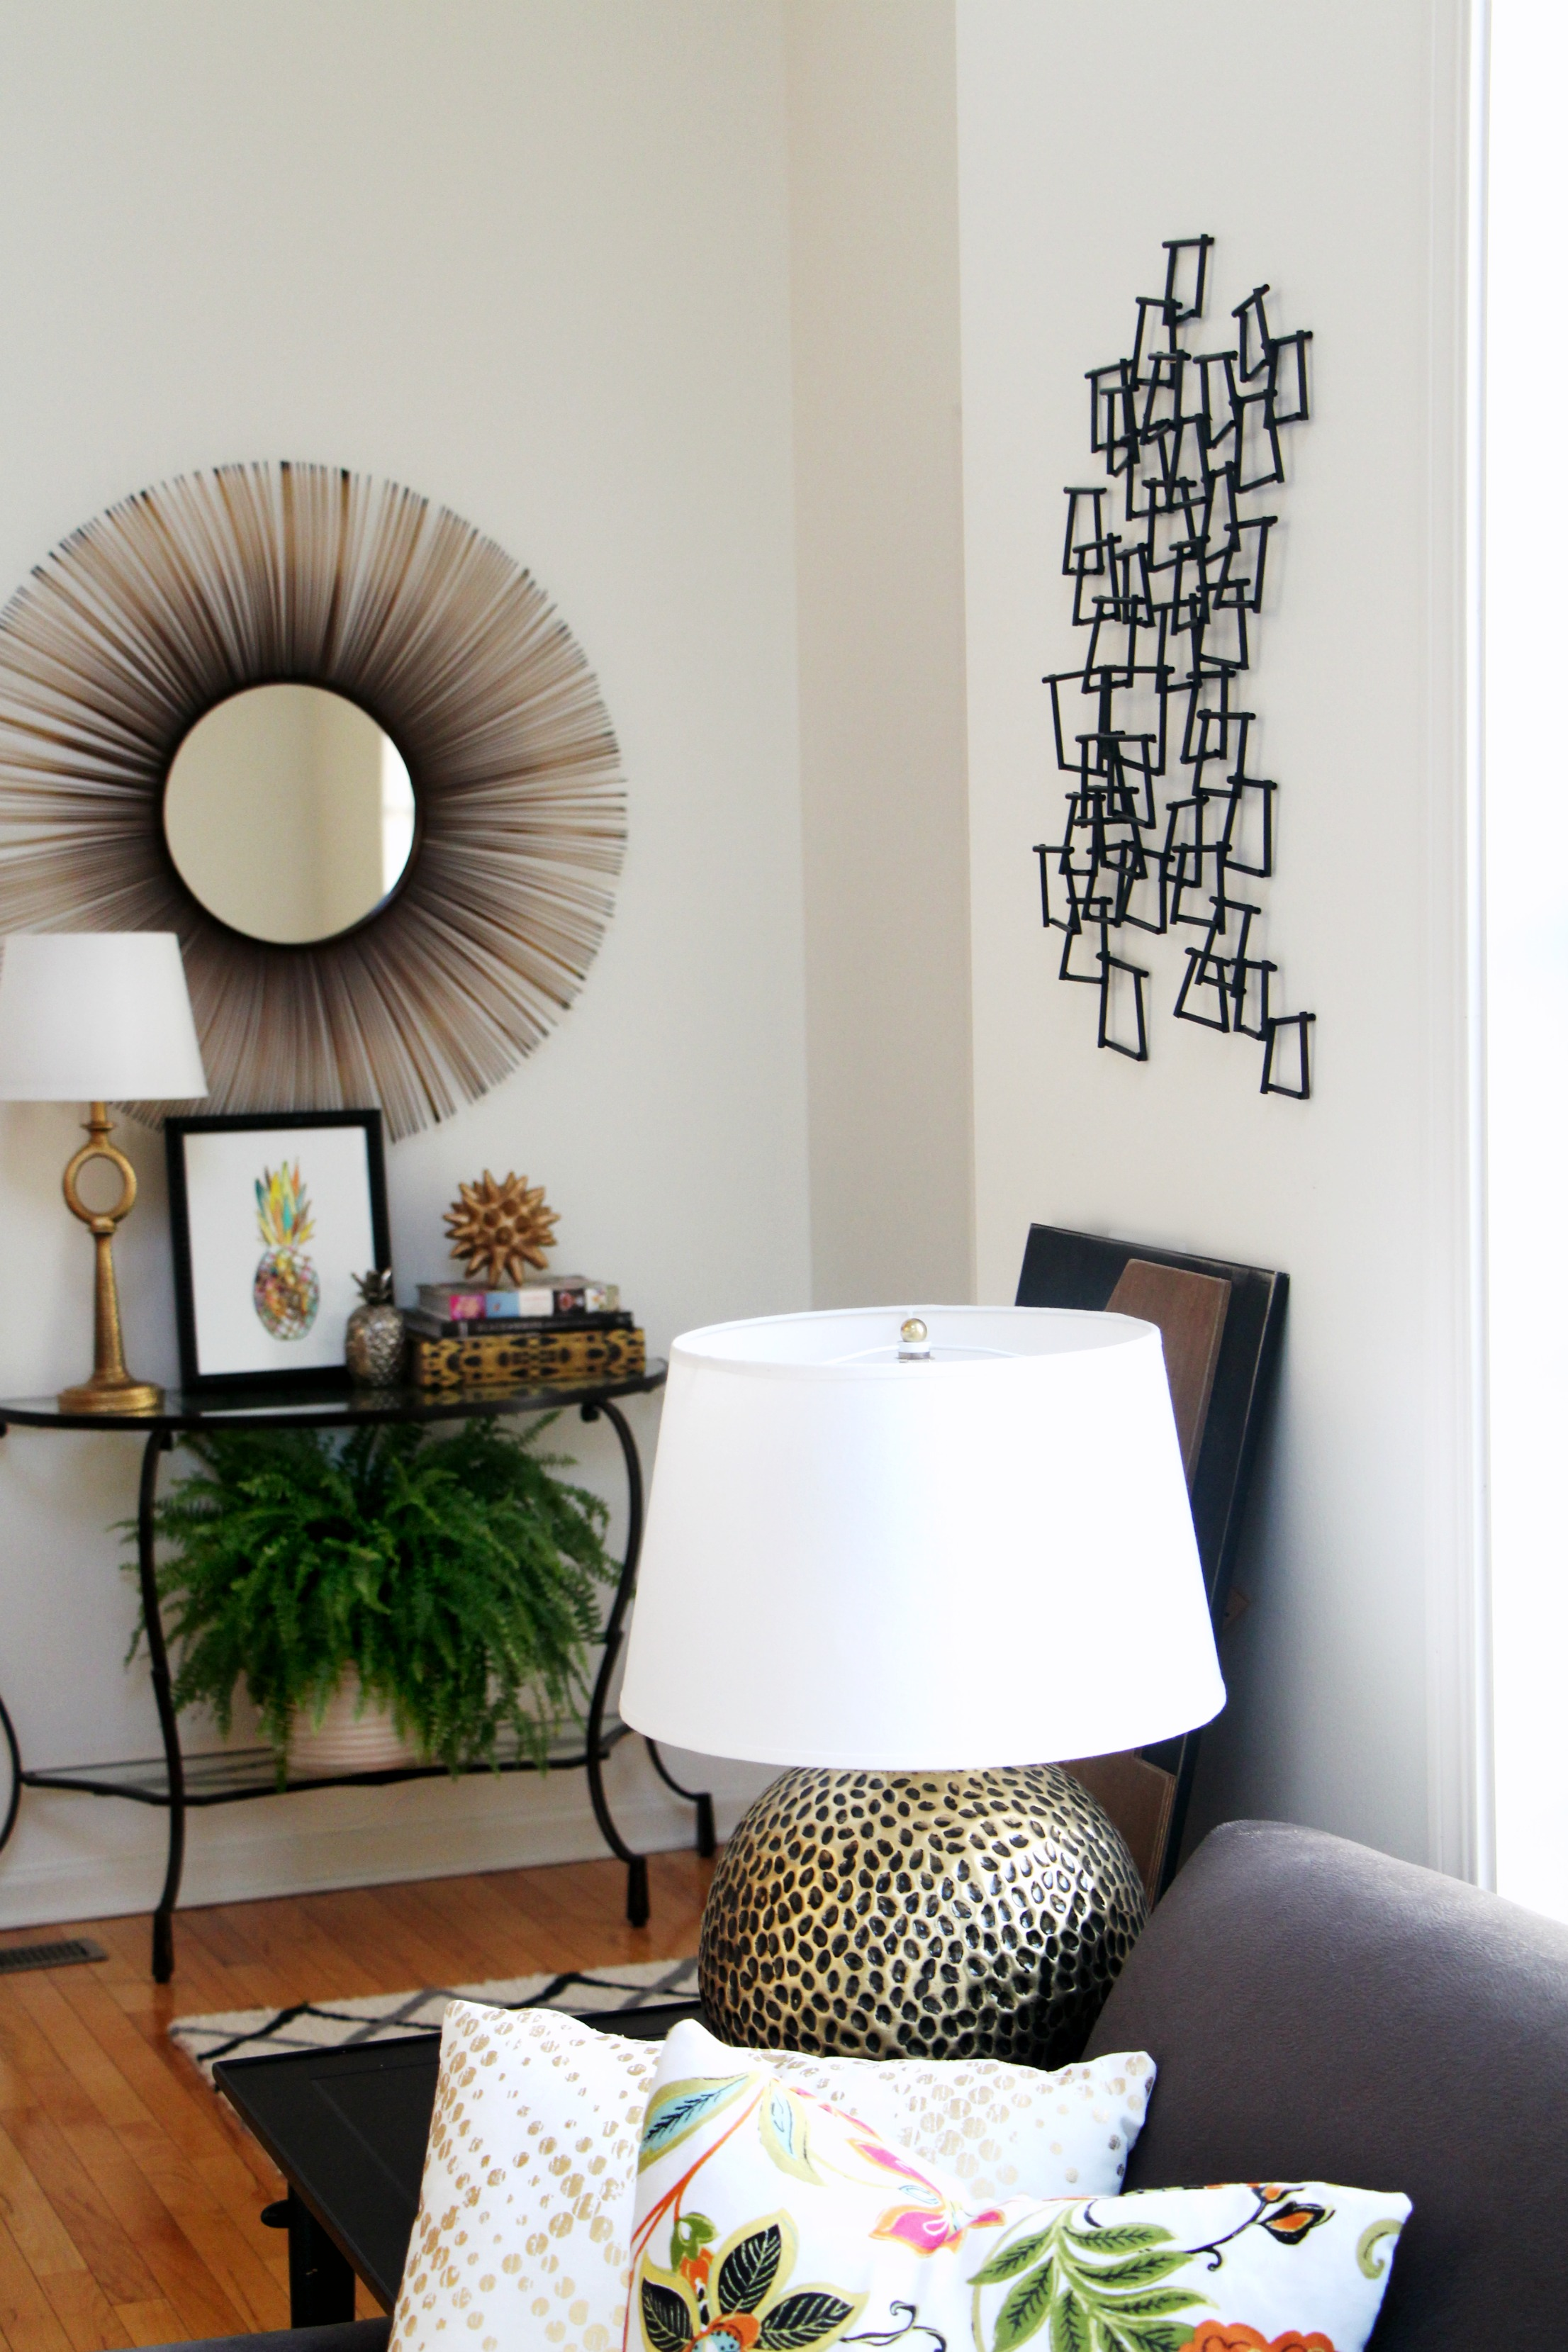 3d Wall Art For Contemporary Homes: DIY Pottery Barn Inspired 3D Wall Art